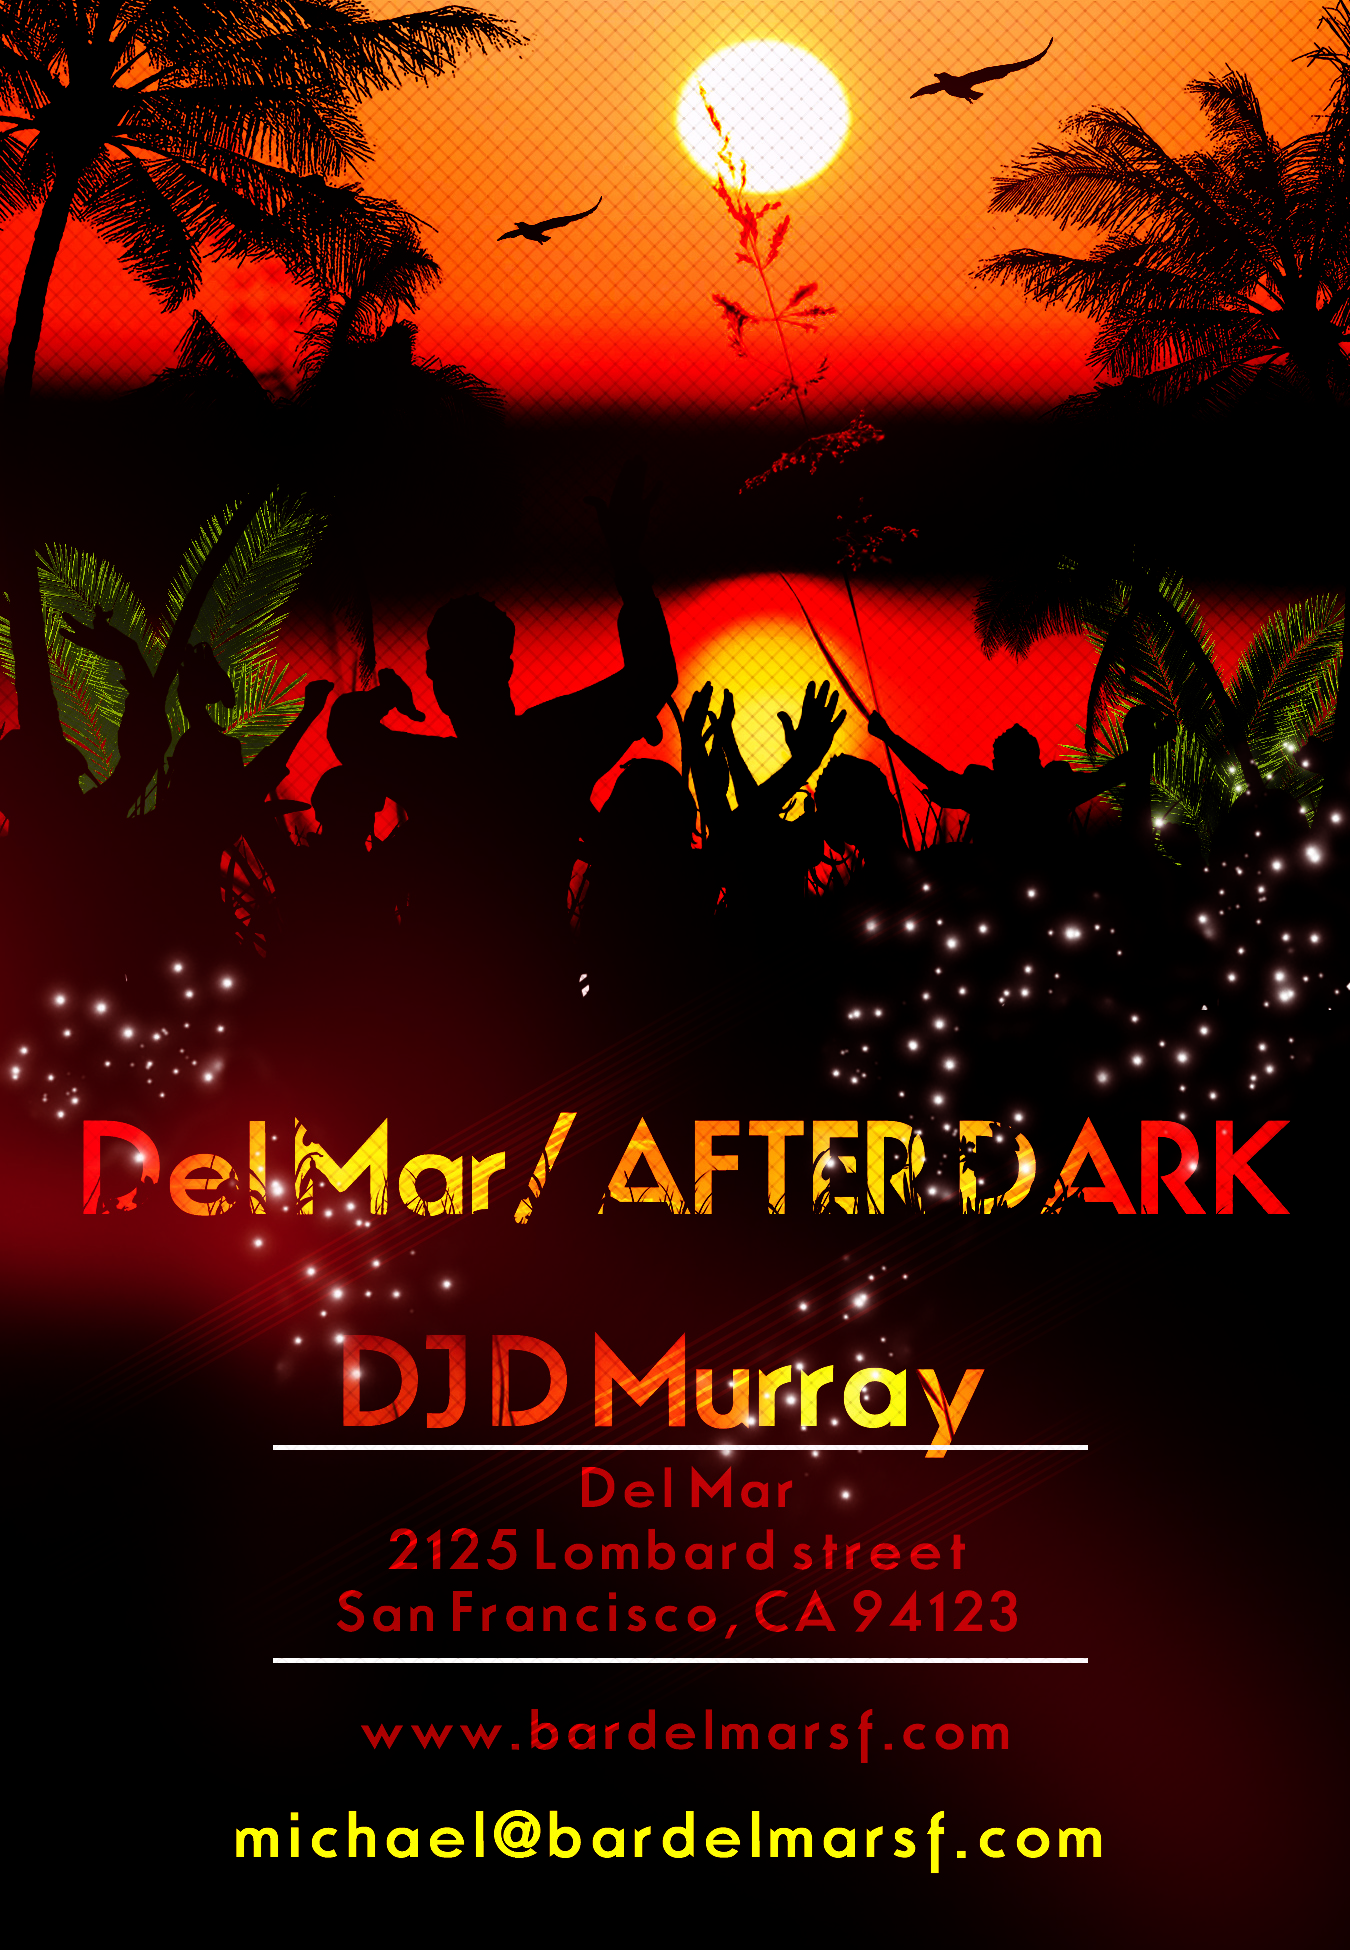 Del Mar After Dark flyer DJ D Murray.jpg